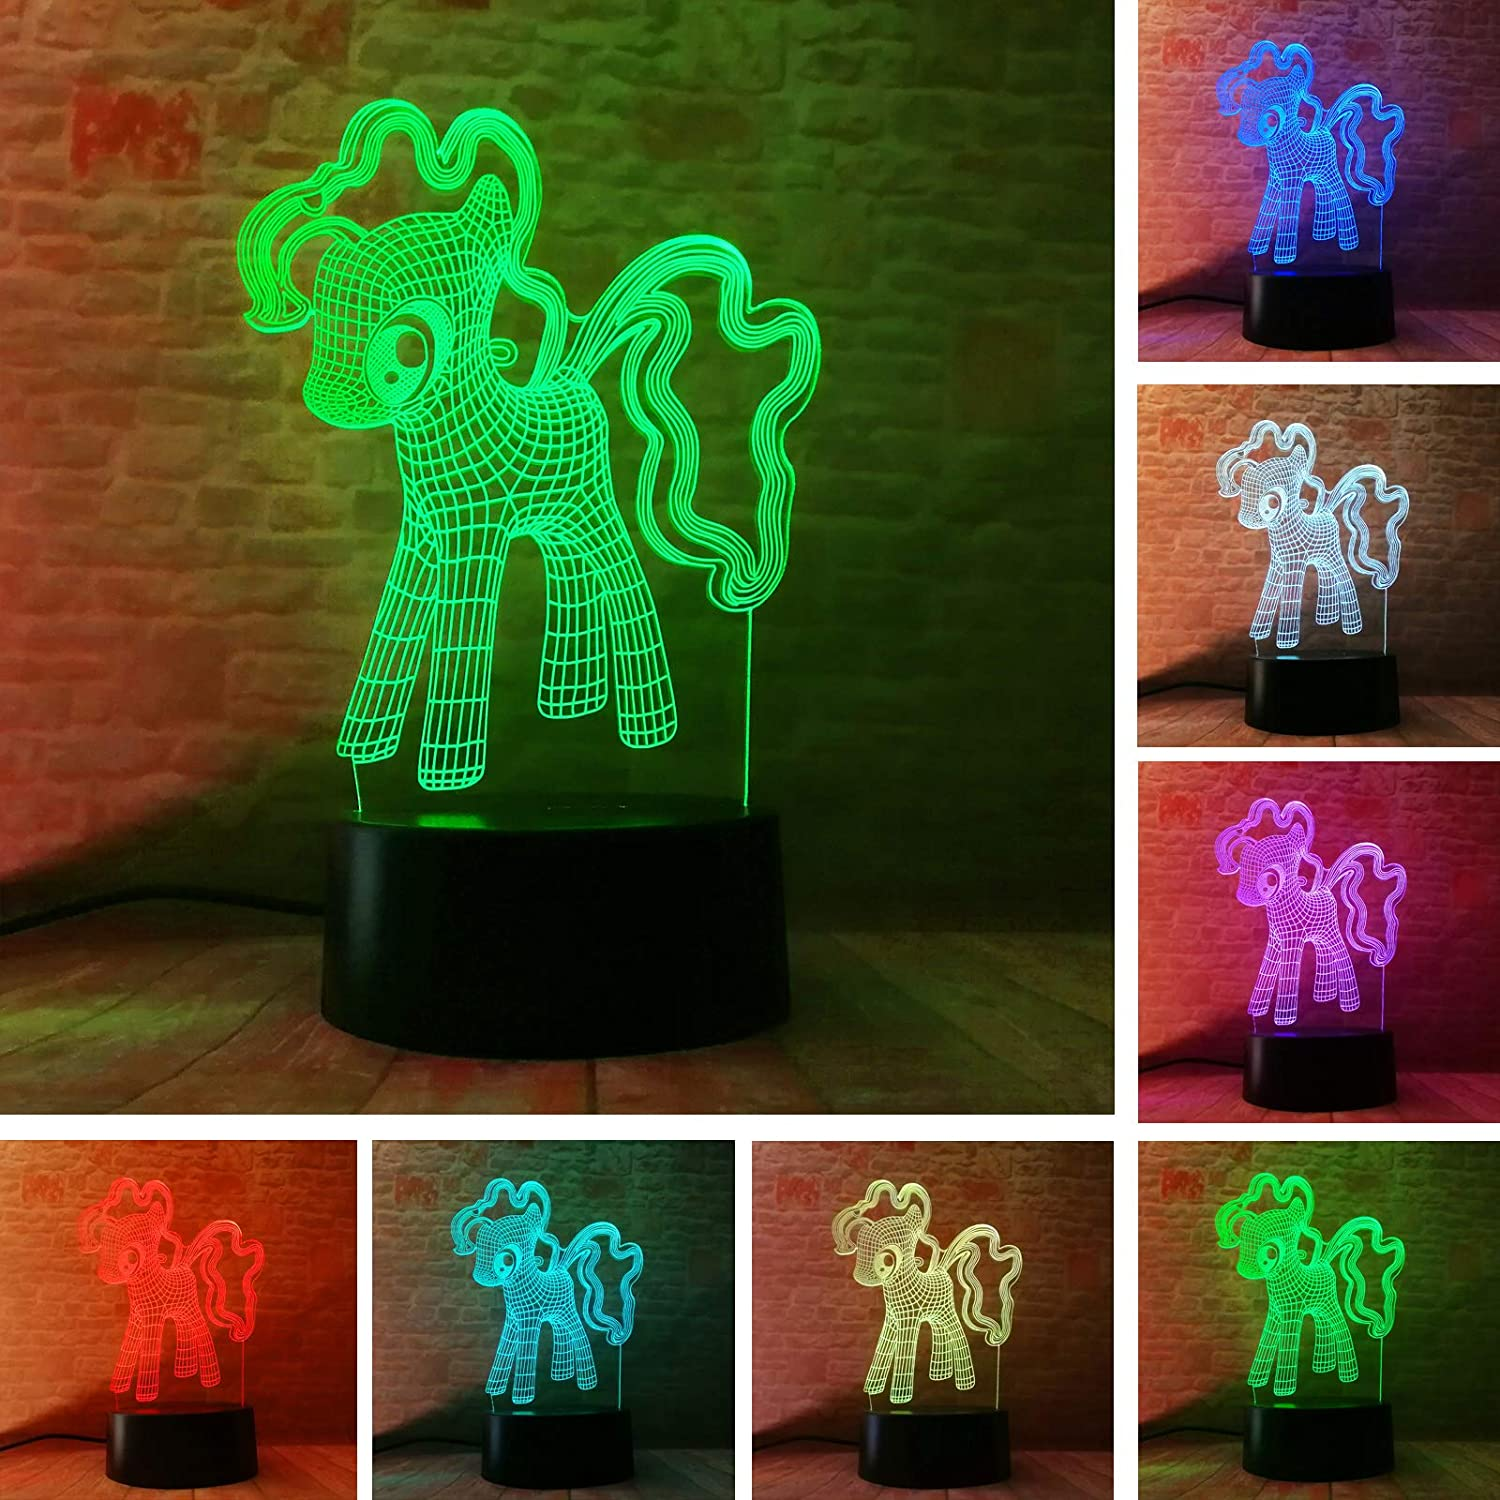 Fanrui My Little Pony Tales Friendship is Magic Figure Lamp, with Remote Control, 16 Color Change - Professional LED Night Light - Boys Child Bedroom Safe Decoraction - Teens Kids Xmas Toys Presents